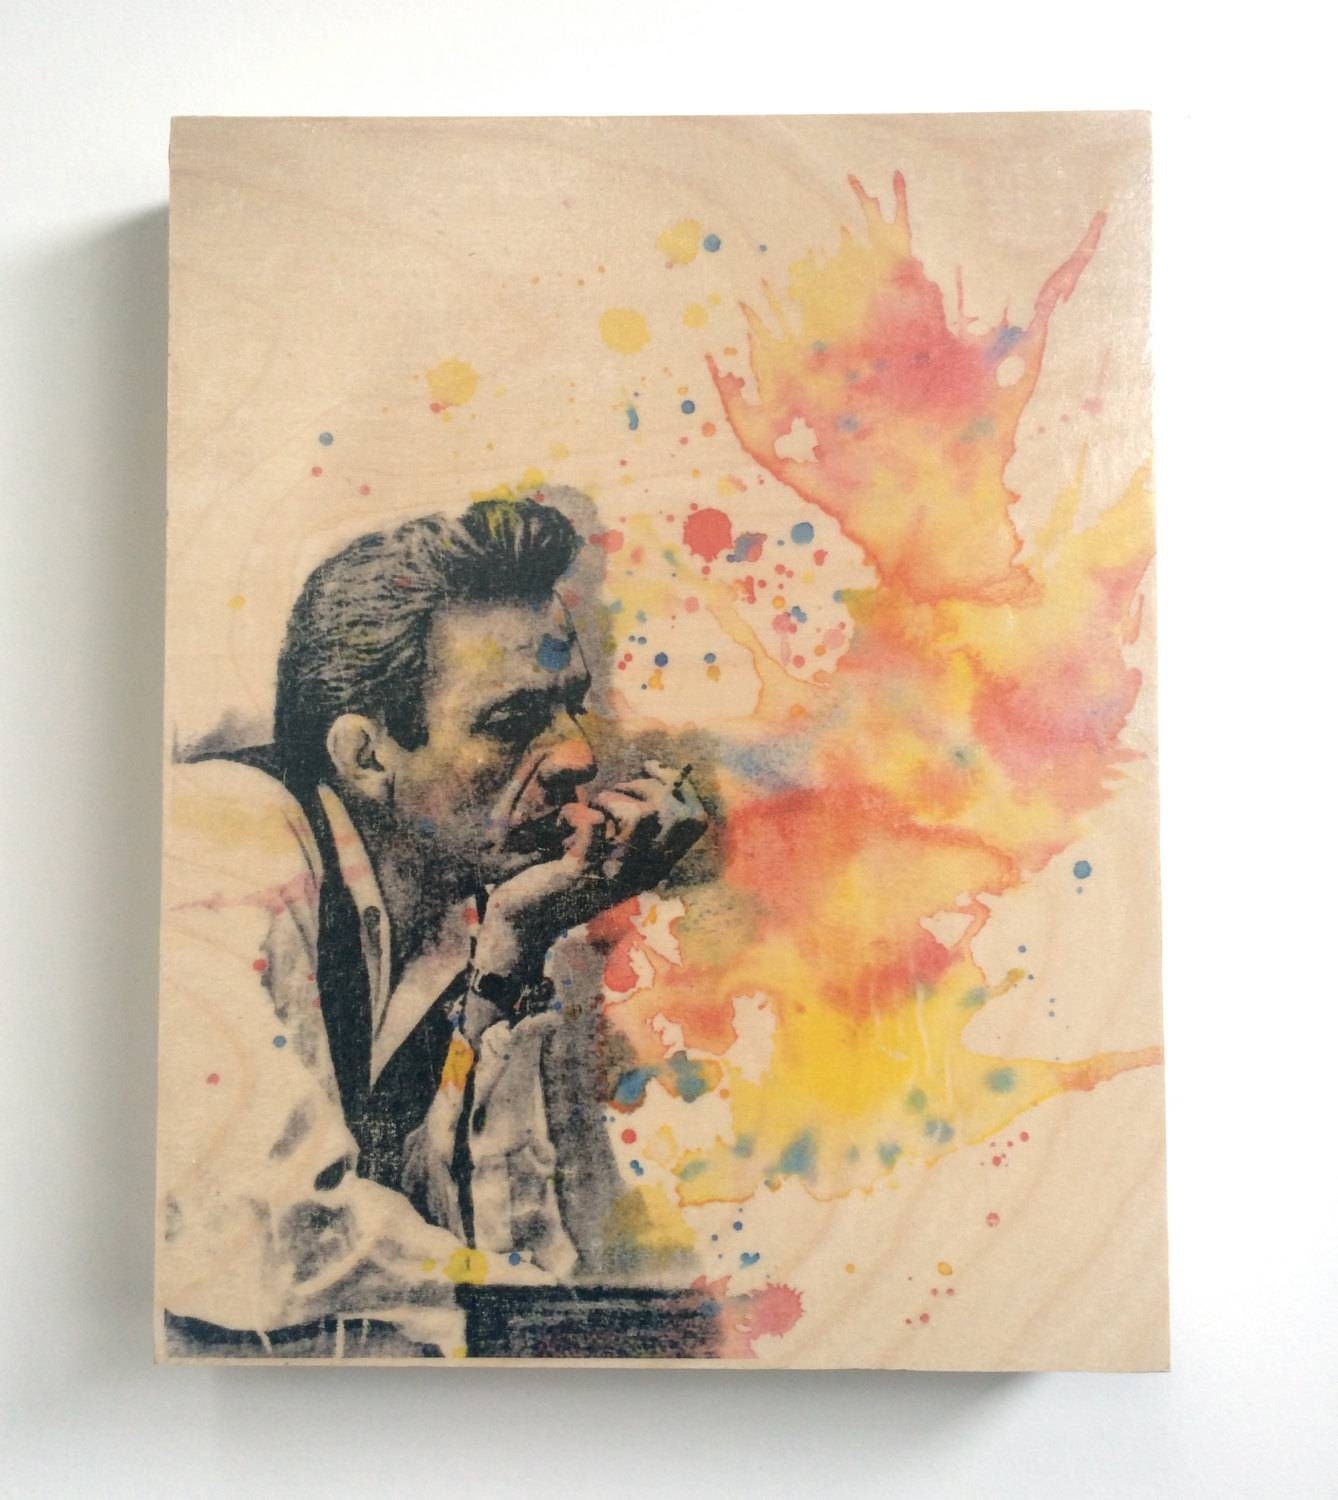 Wood Wall Art Panel Johnny Cash Art Print From Original Within Recent Wooden Wall Art Panels (View 17 of 20)